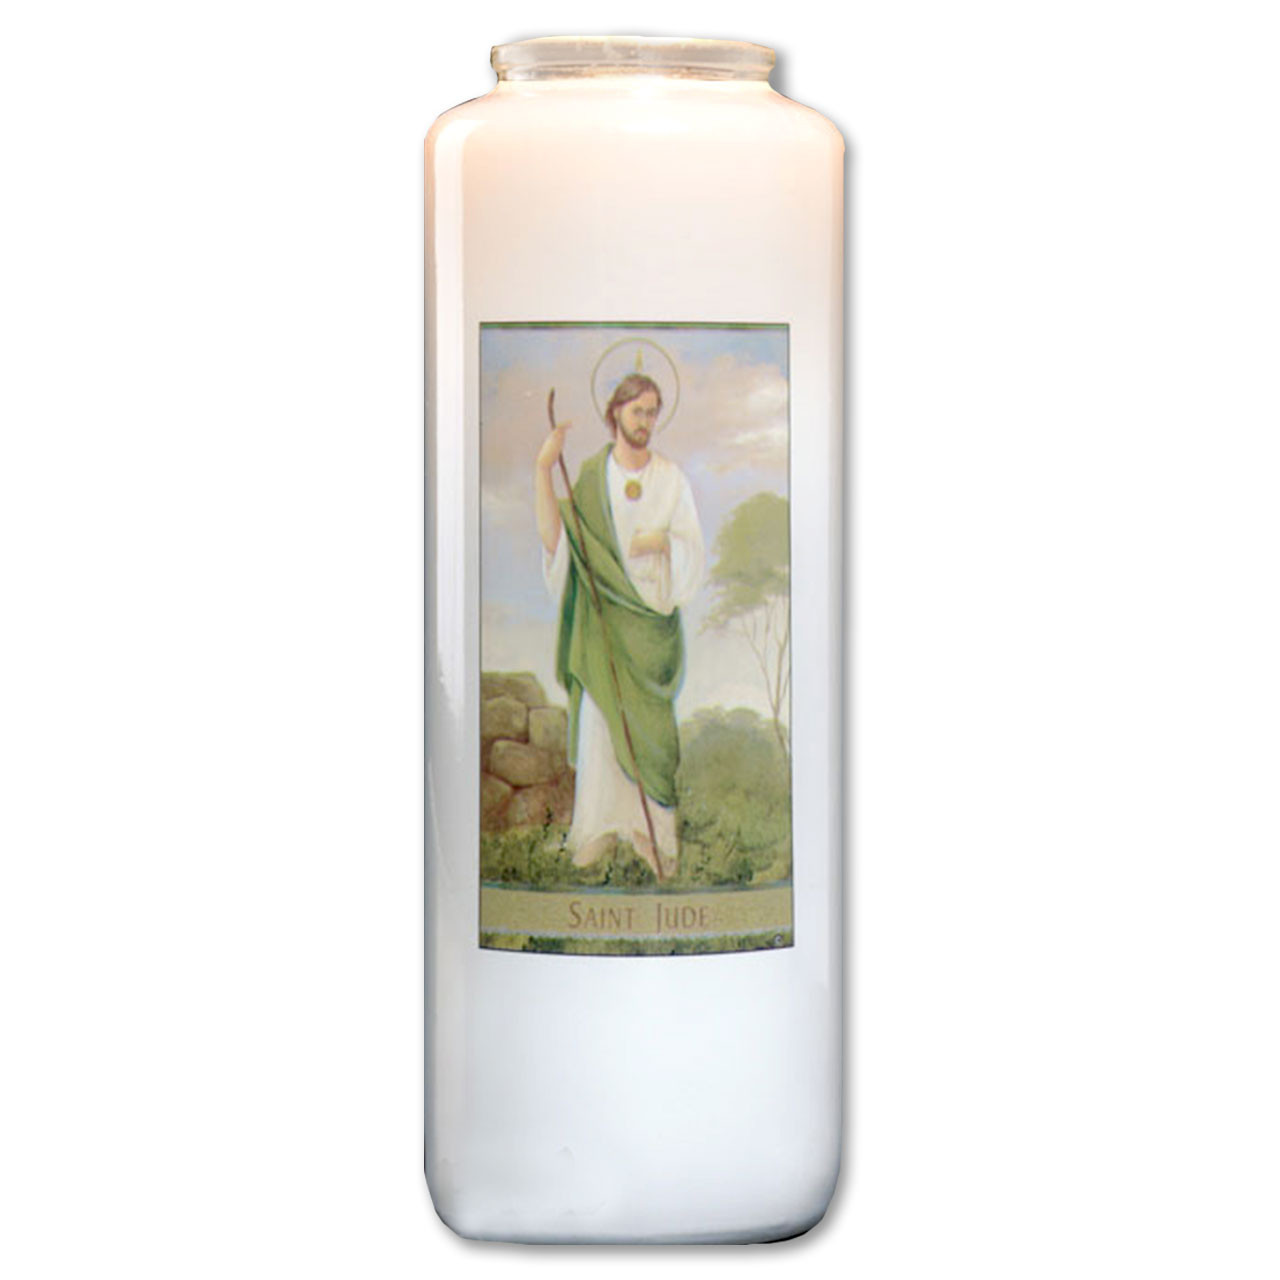 St. Jude Votive Candle - 6 day